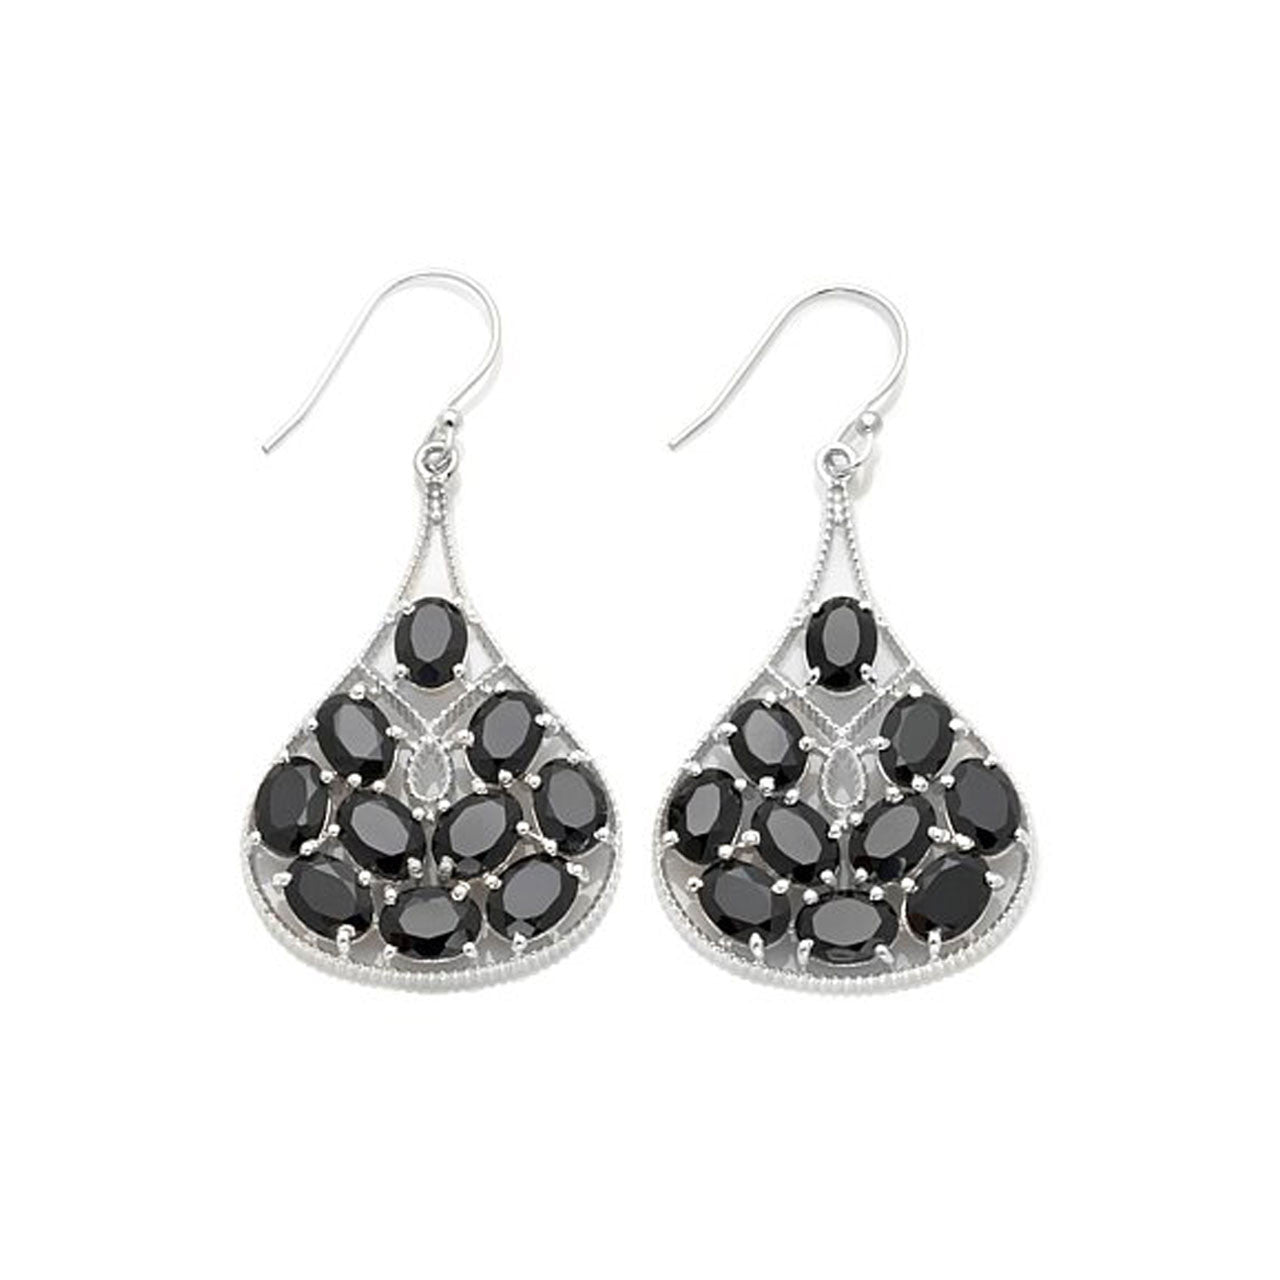 spinel edits jewelry in lyst uzerai black earrings